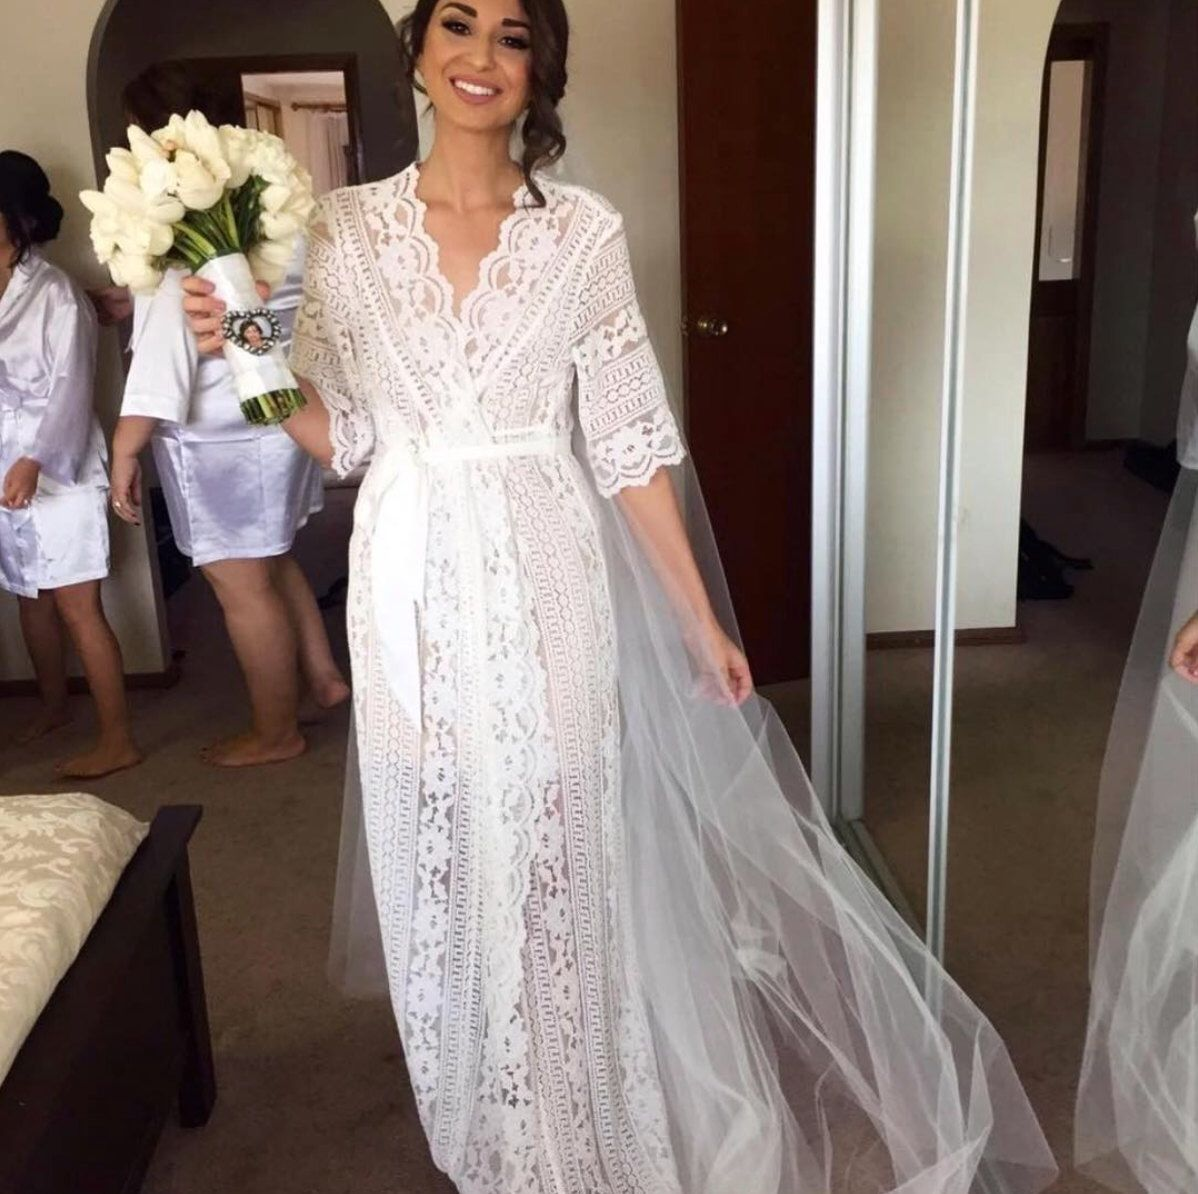 ec39f22d3 Lace Bridal Robe    Bridesmaid Robes    Robe    Bridal Robe    Bride ...